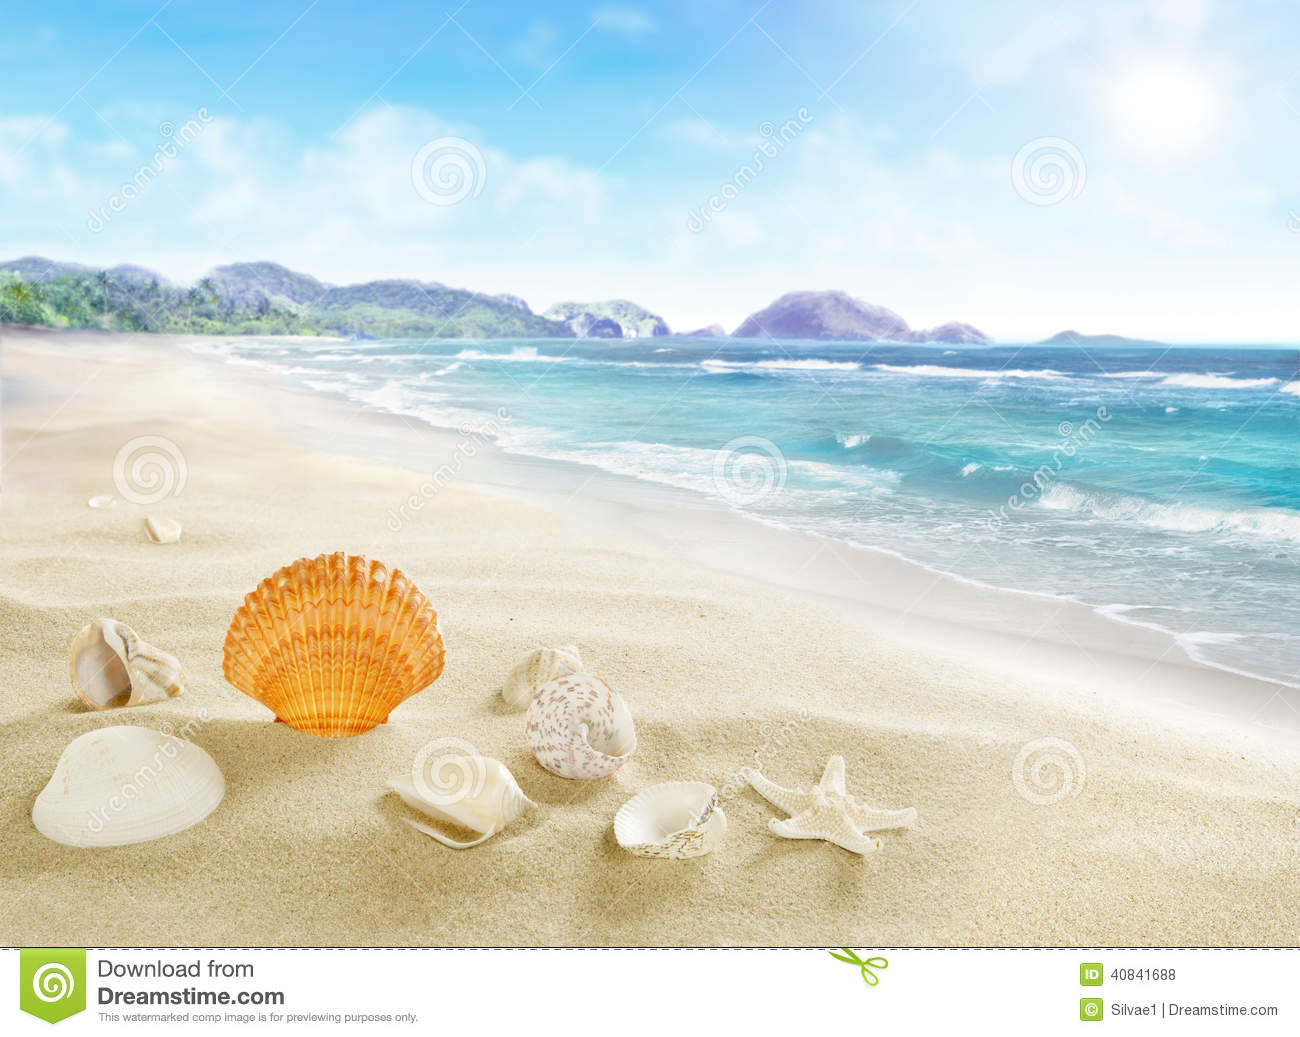 how to find shells on the beach